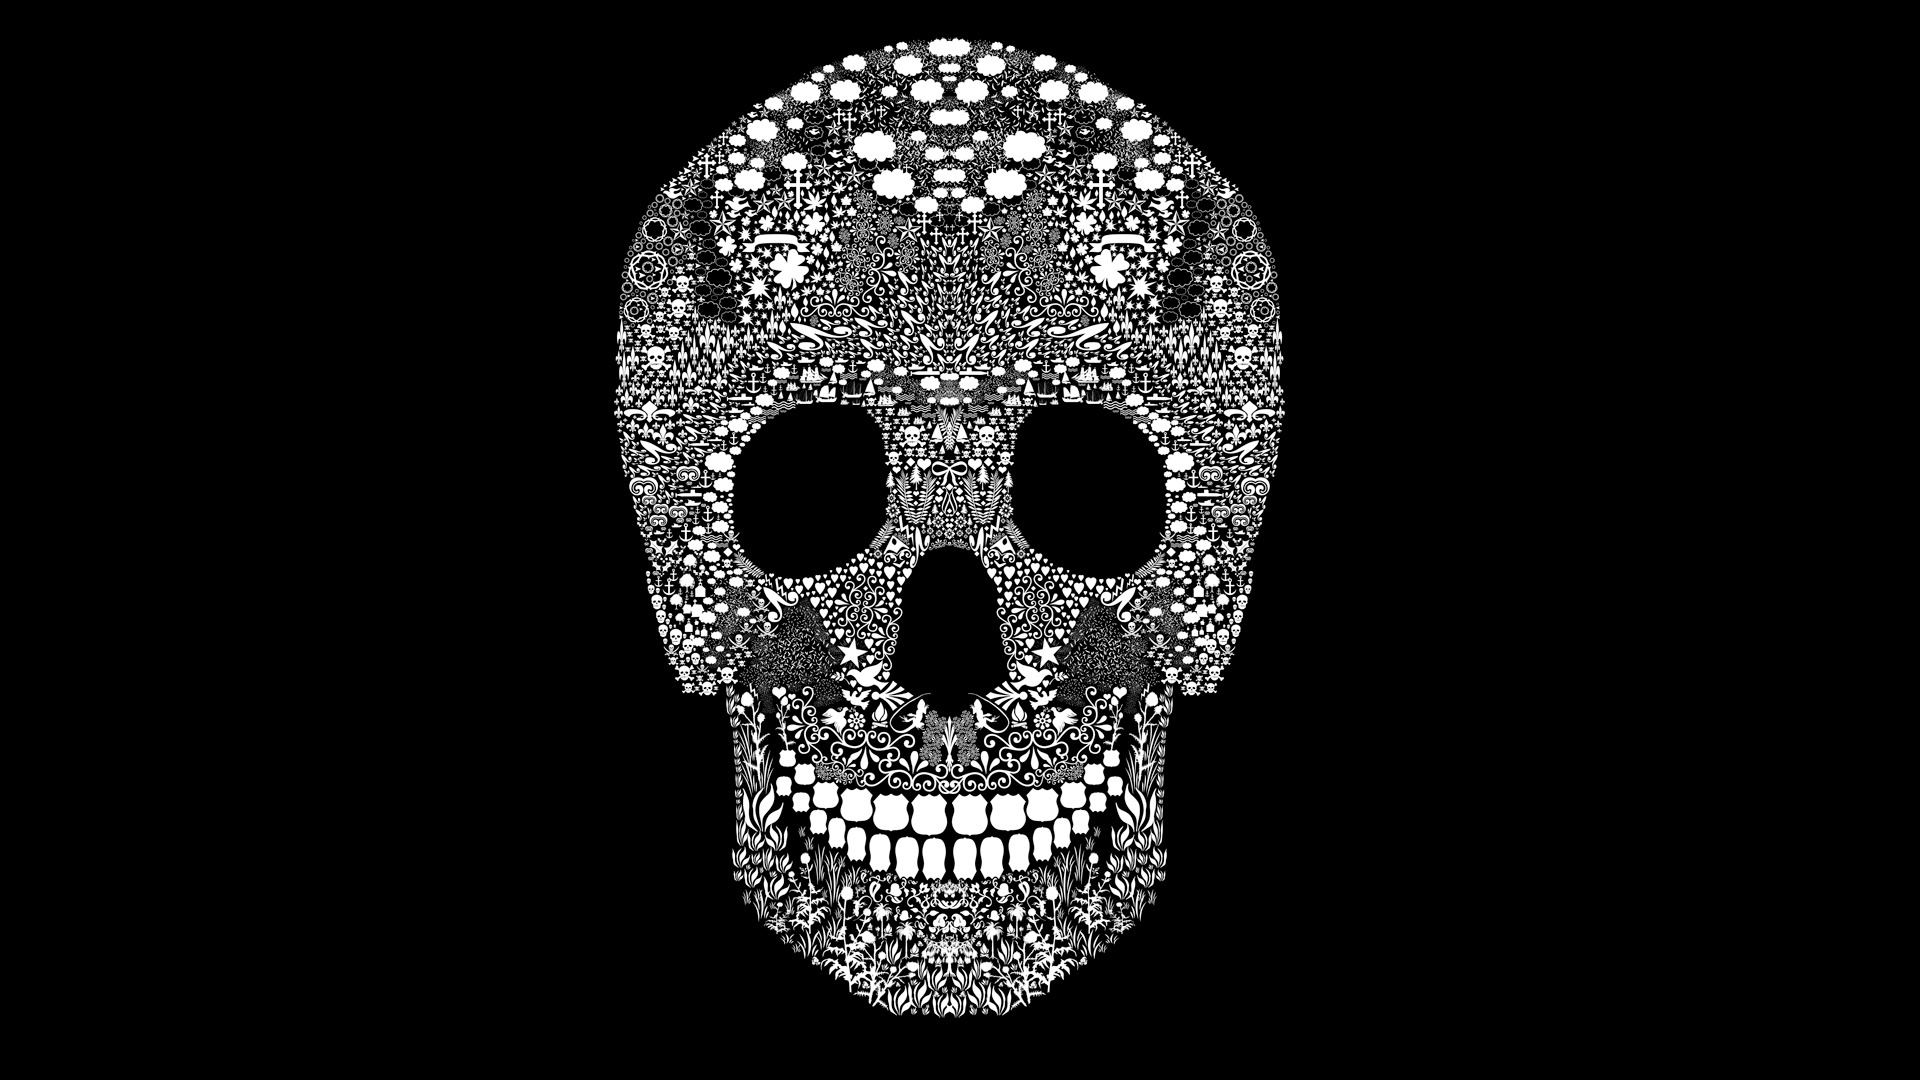 Free Download Black And White Skull Wallpaper Hd Wallpapers Pretty